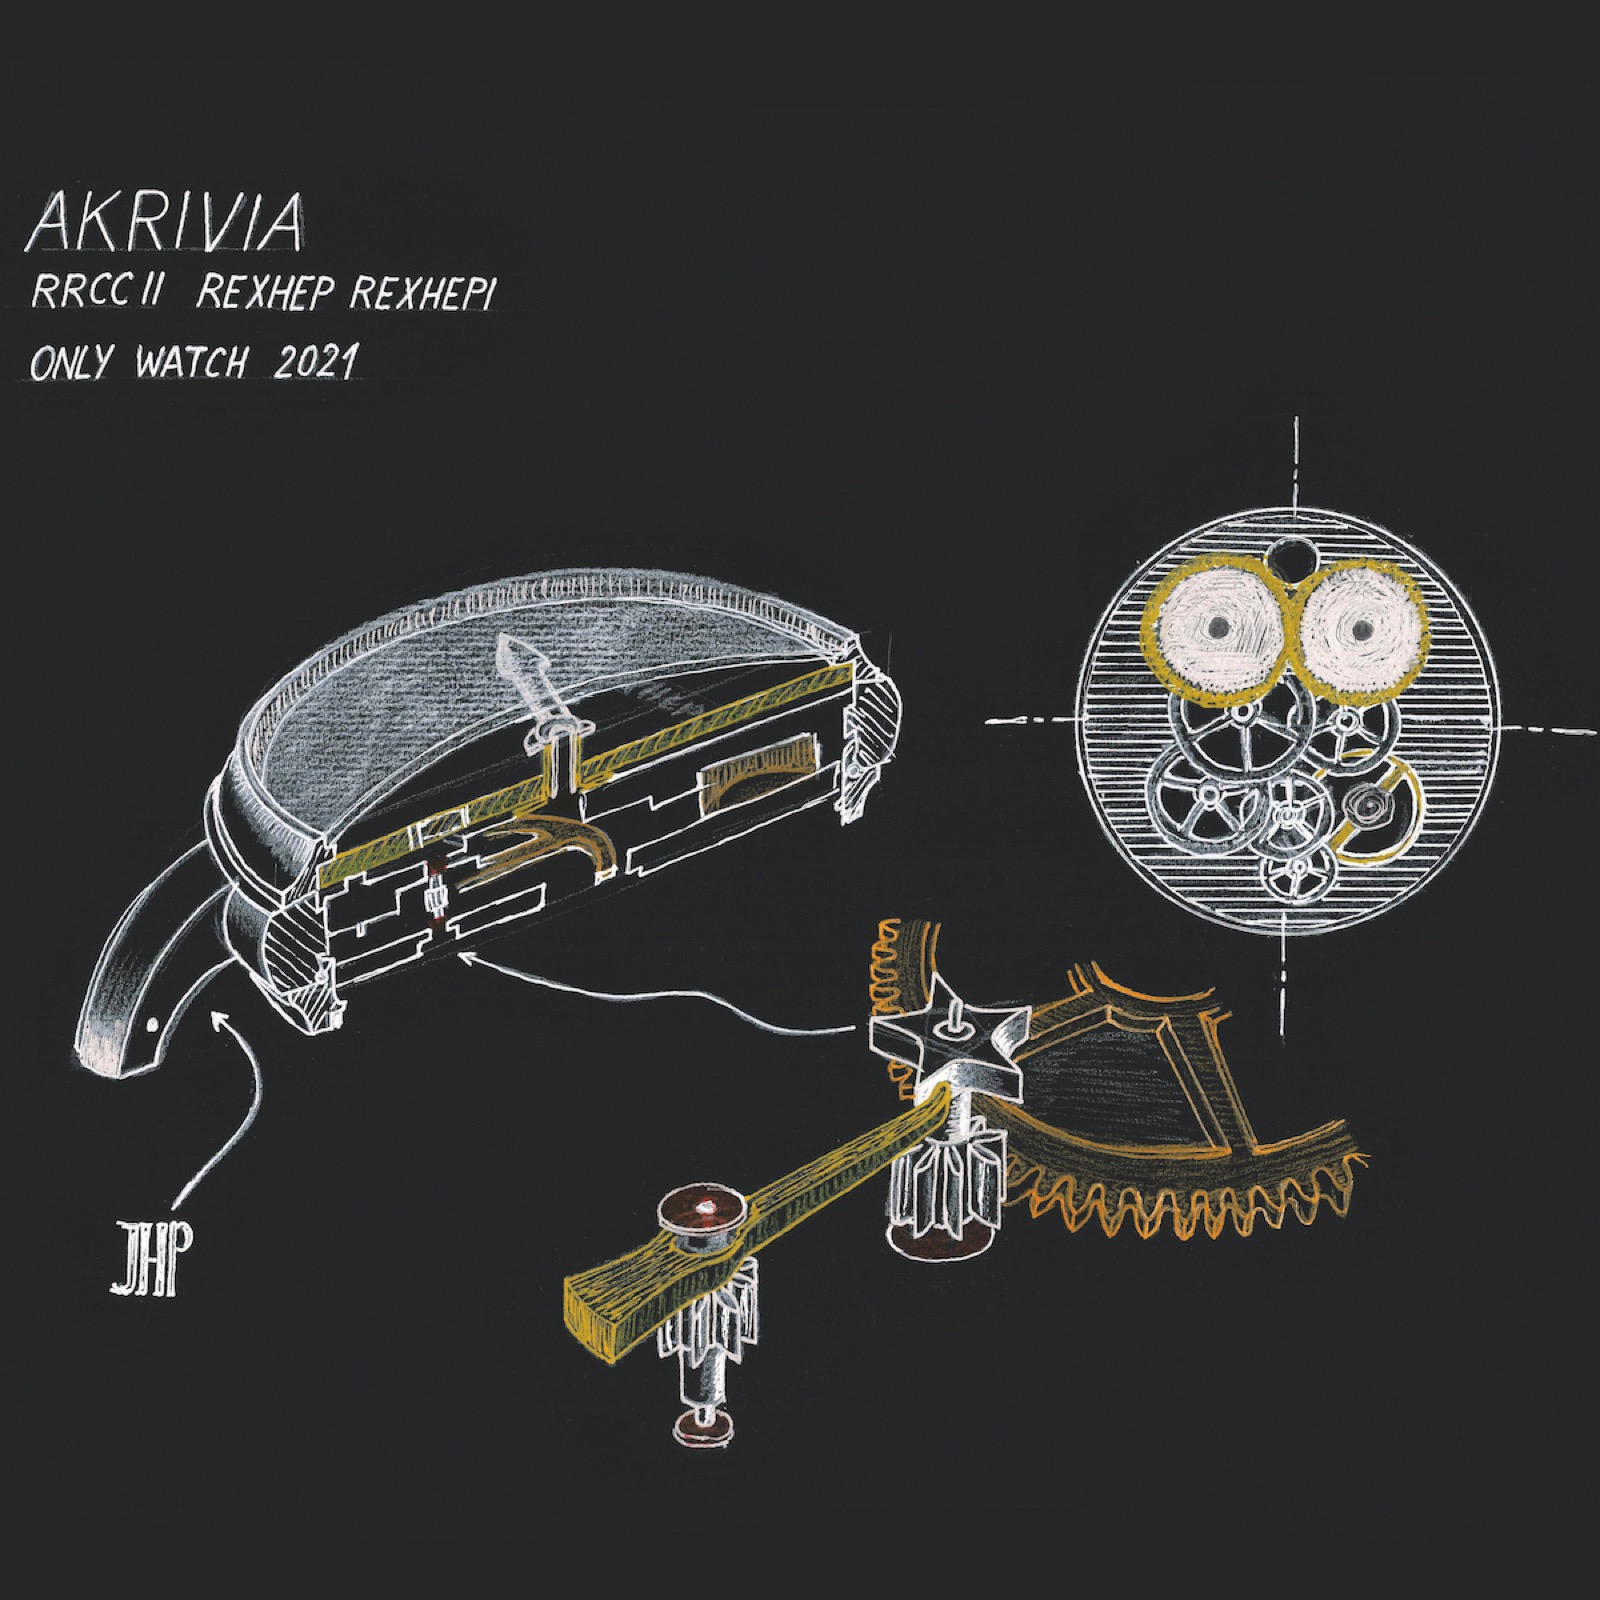 Akrivia-only-watch-2021